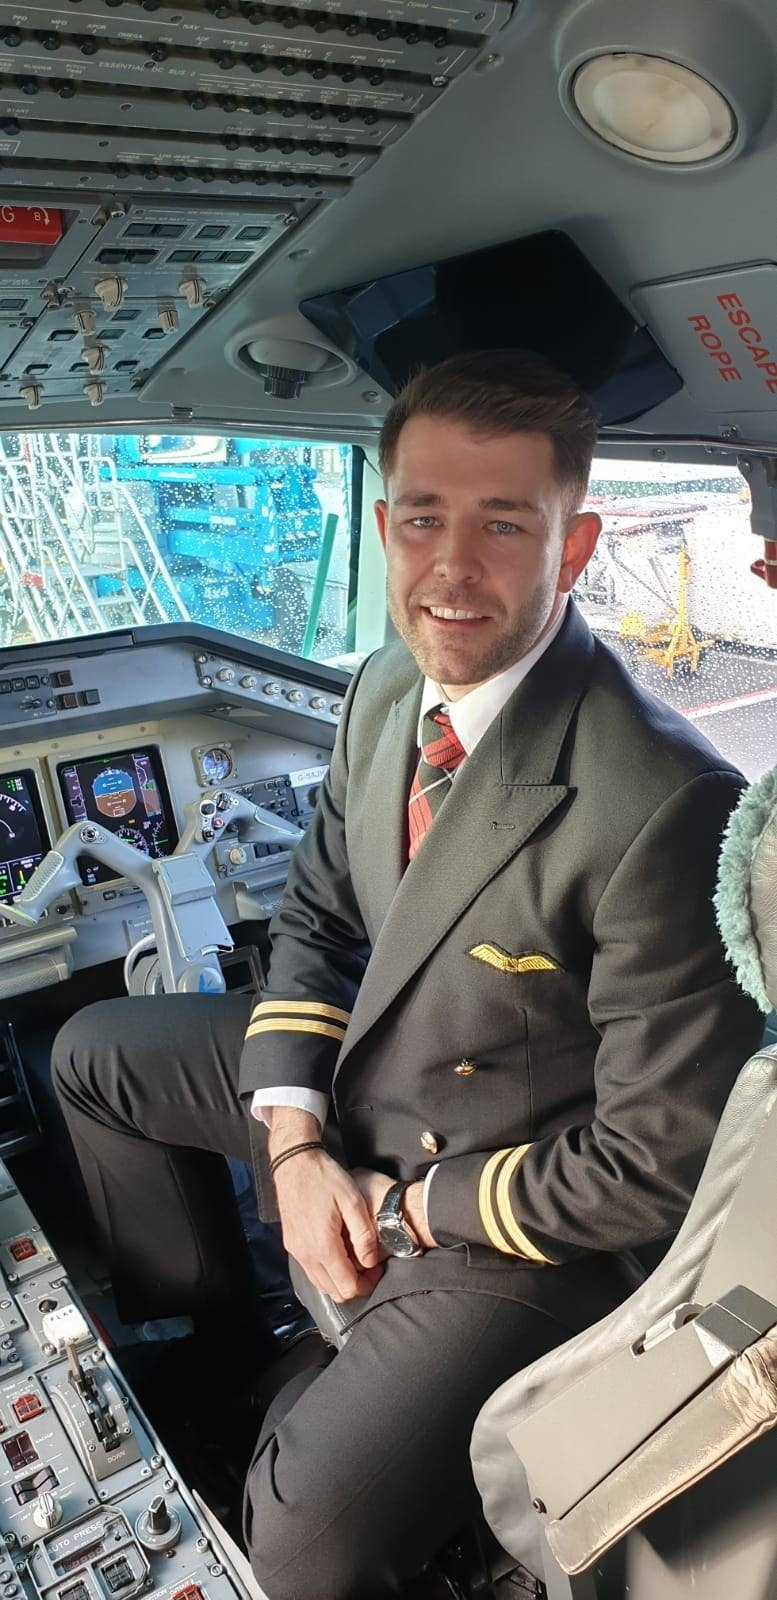 HIV positive airline pilot fights back against HIV stigma - slika 1